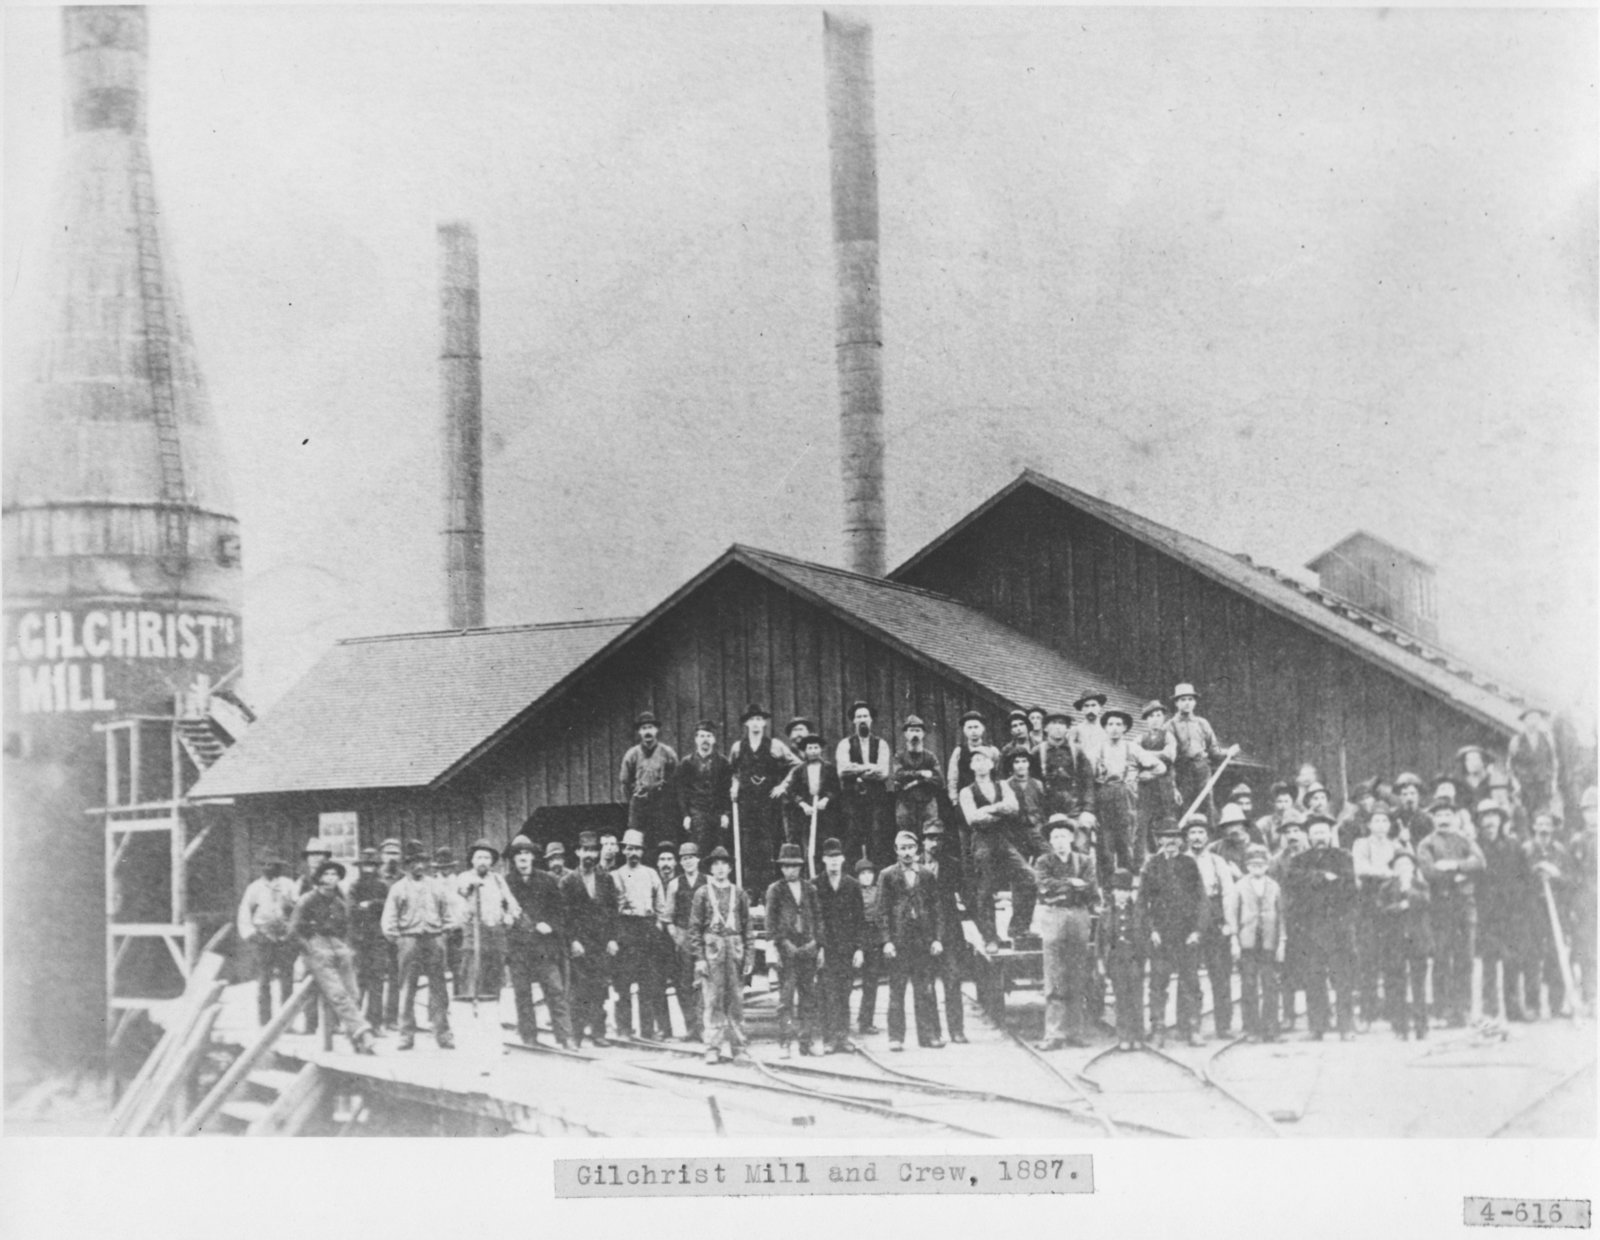 Gilchrist Mill and Crew